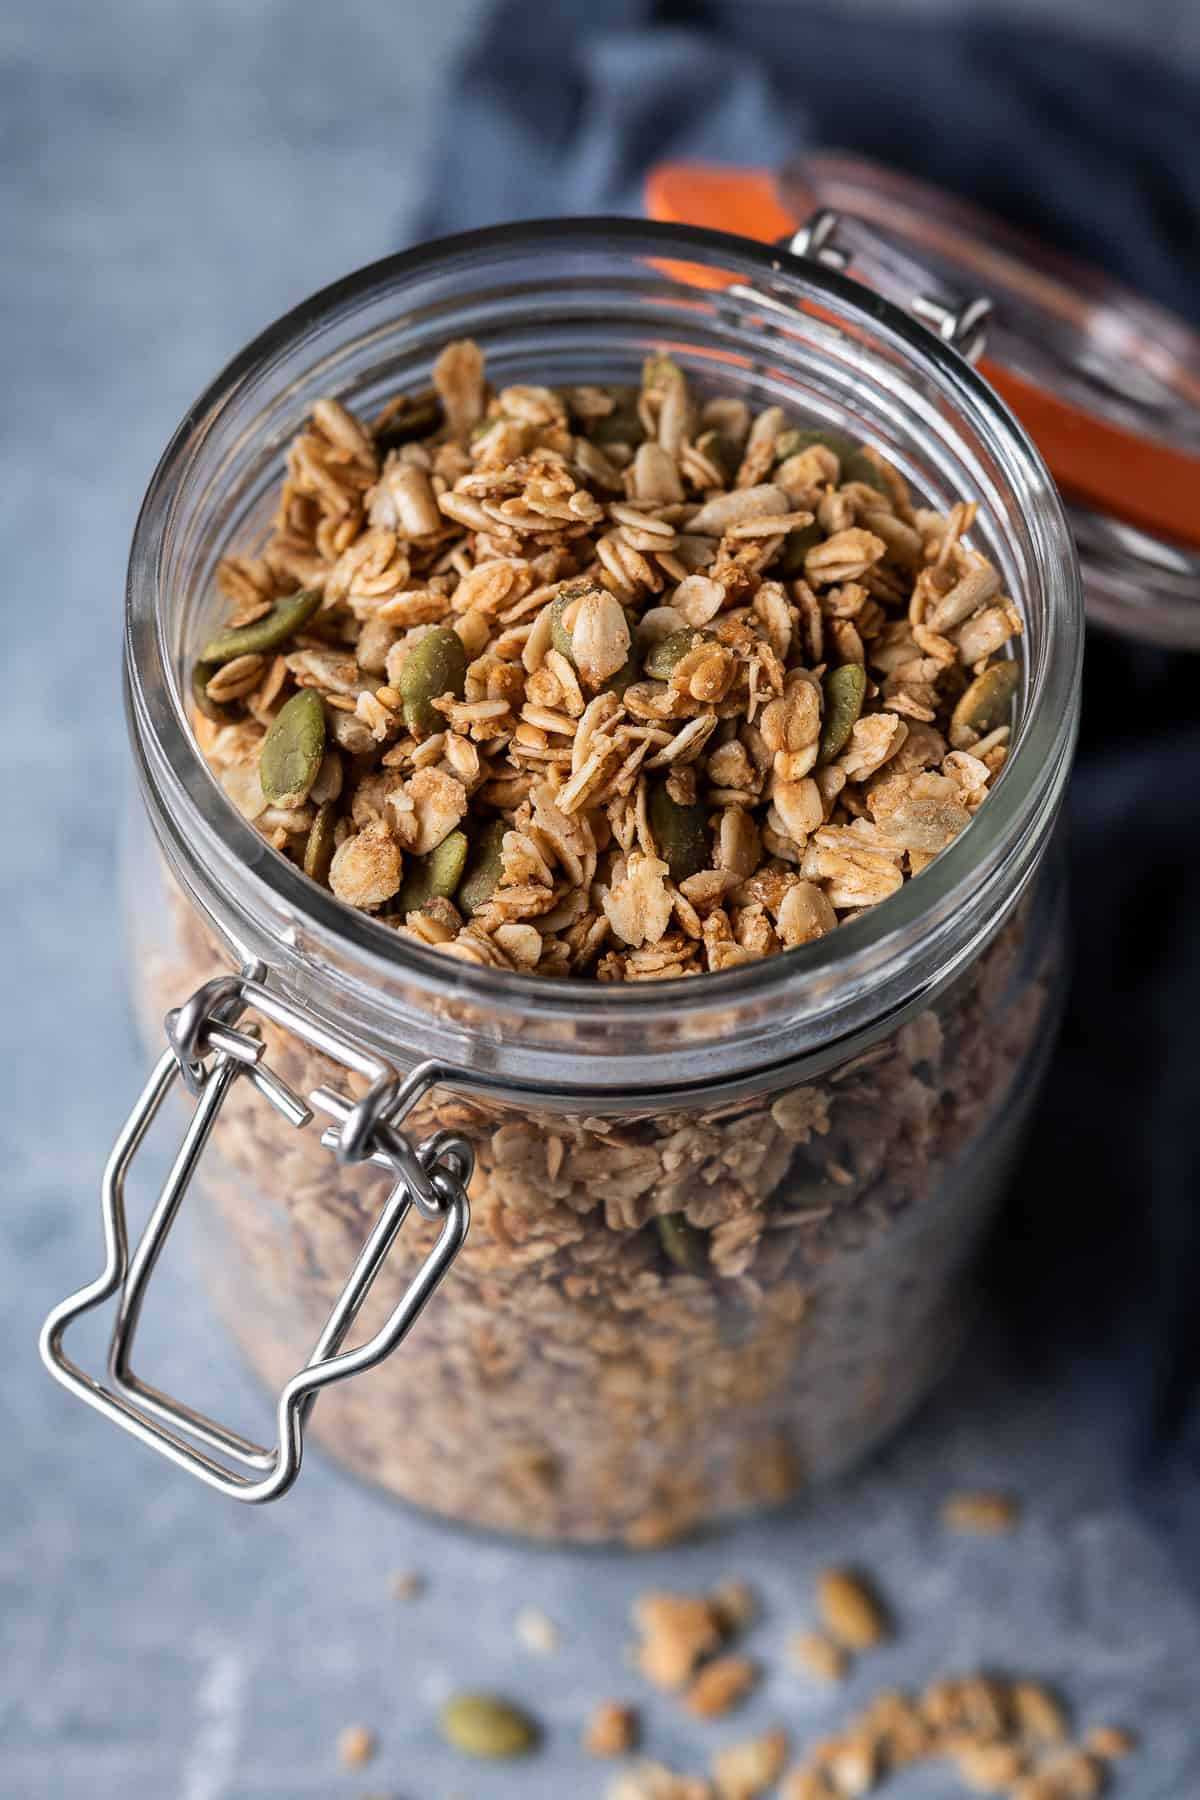 a glass jar full of vegan granola.